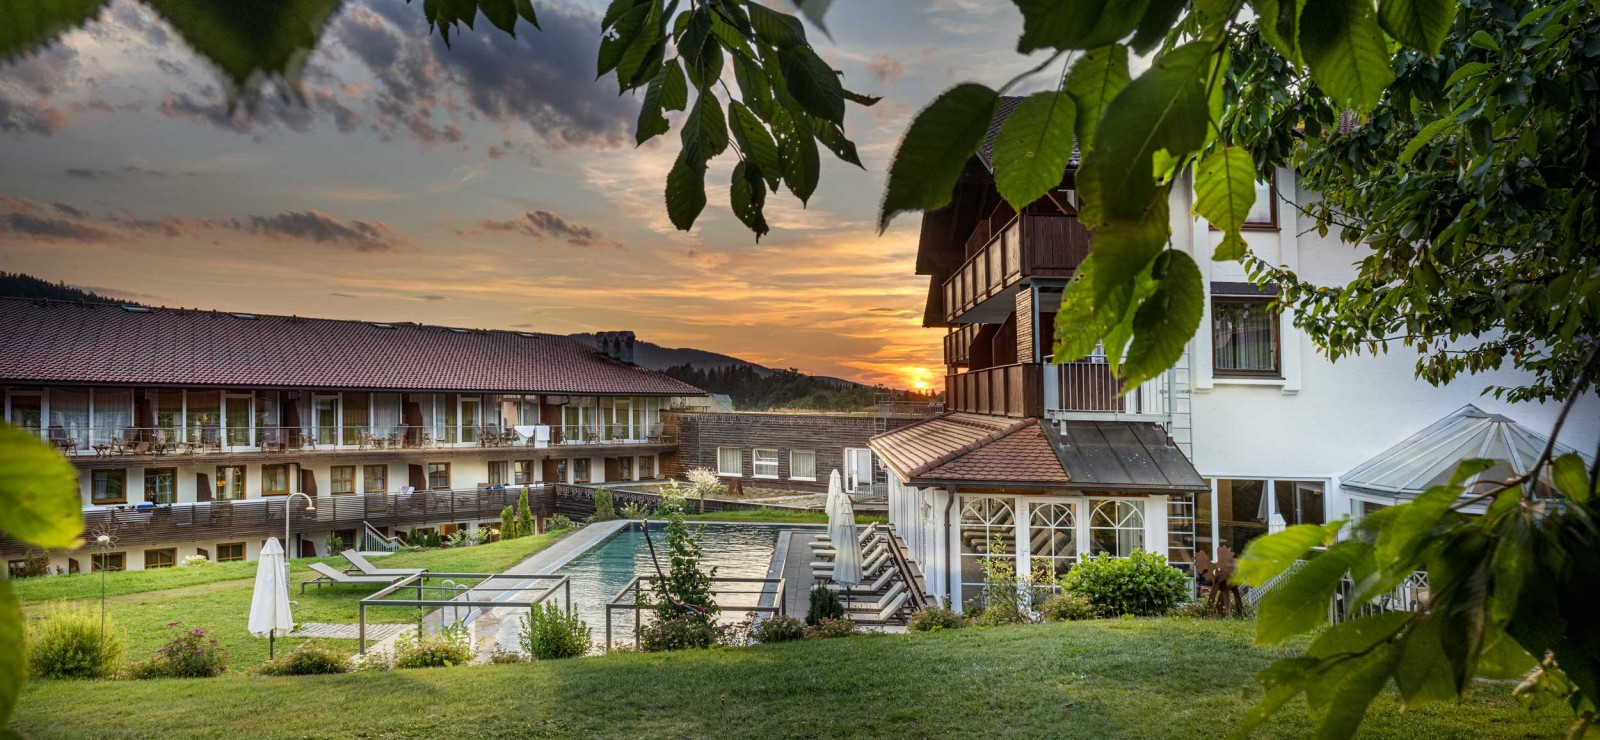 Wellnesshotel Wellnesshotel Lindenwirt | Drachselried